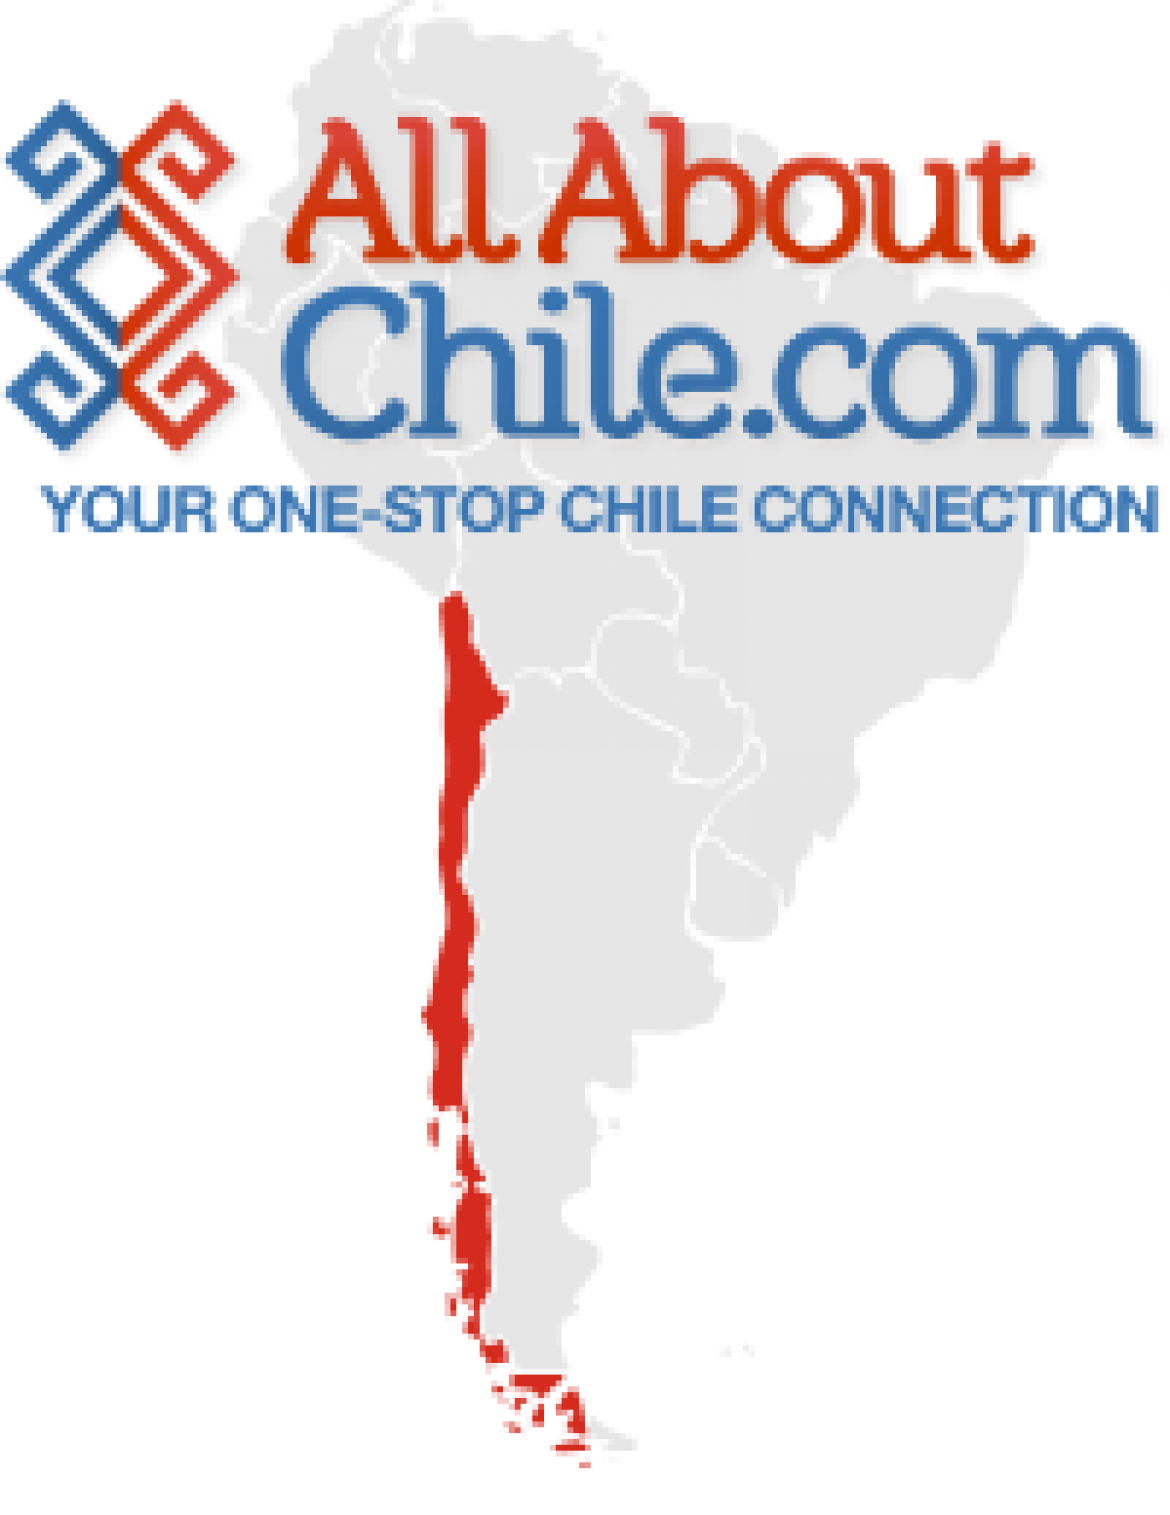 AllAboutChile.com Offers FREE Blog Services